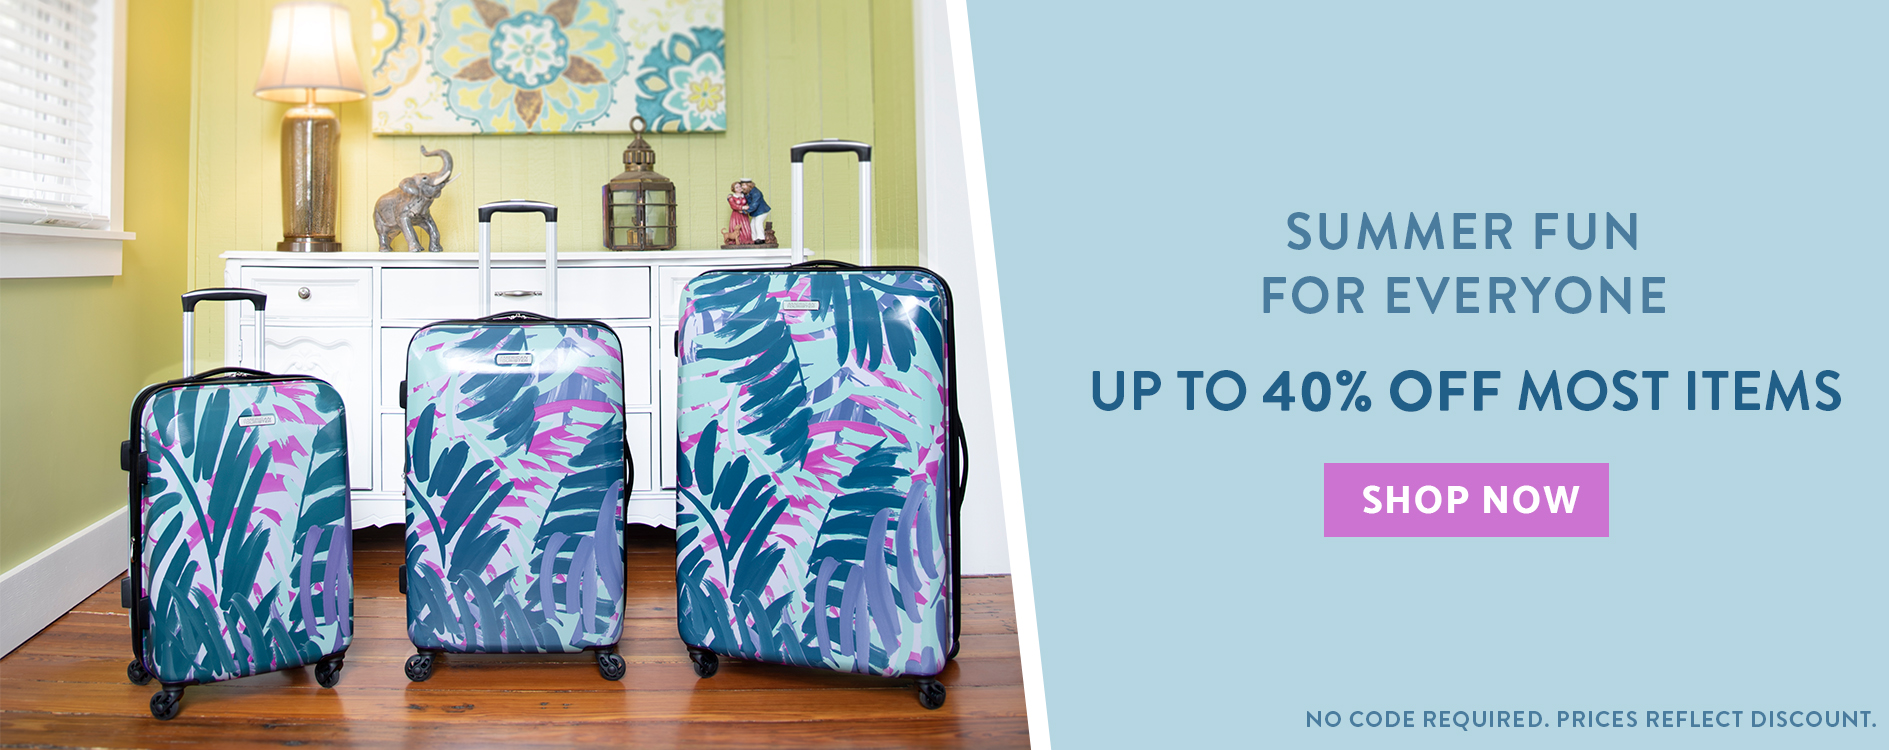 62d09018e986 American Tourister - Pack More Fun | Stylish, High Quality and Fun ...